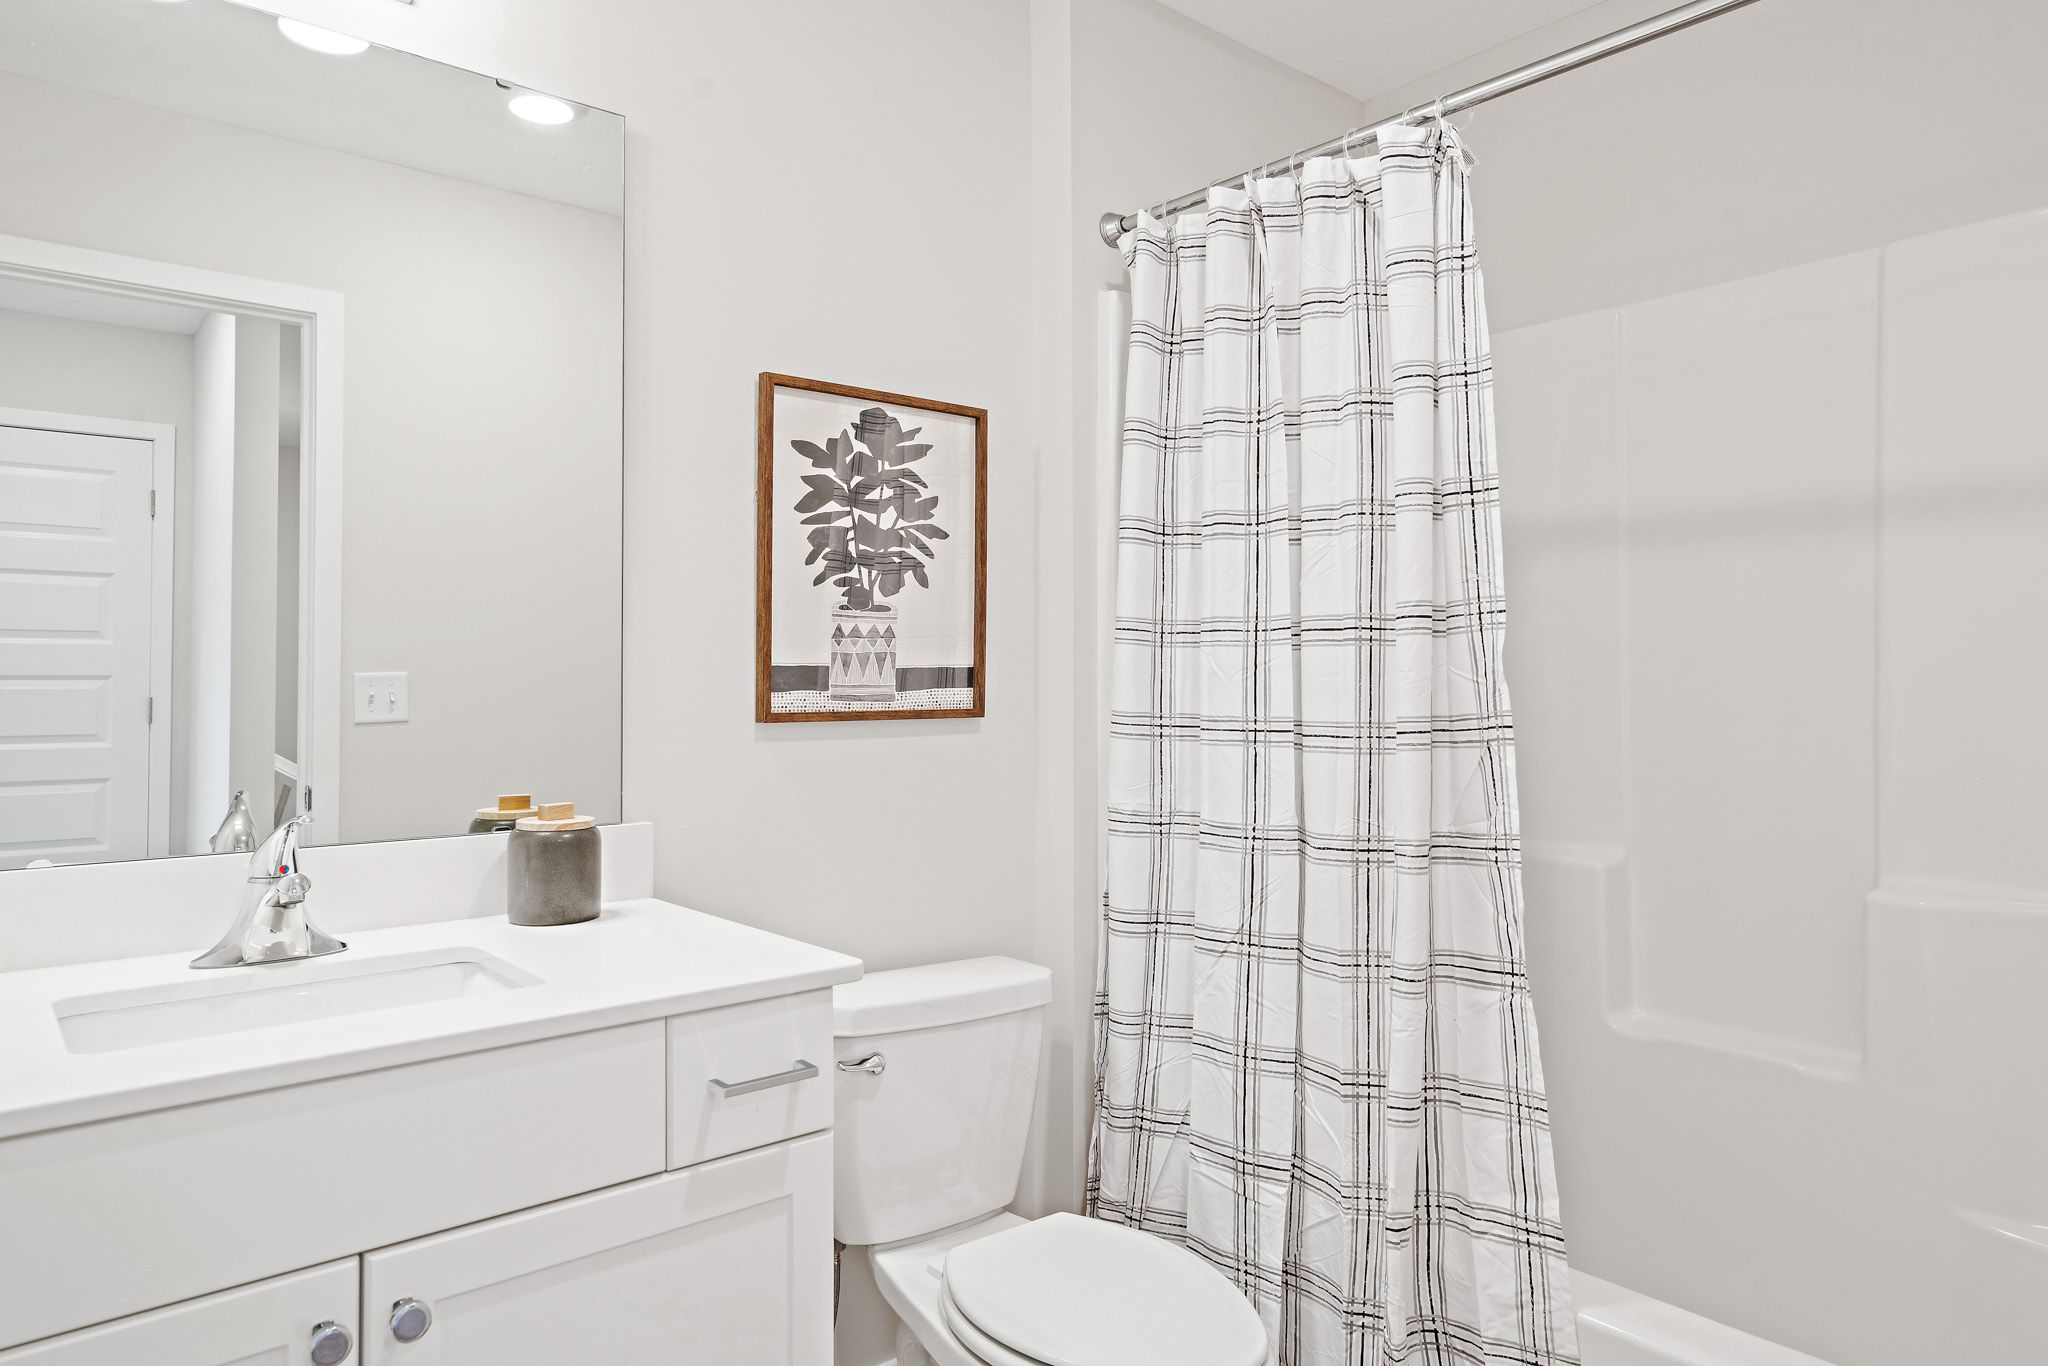 Bathroom featured in the indigo By clover & hive in Kansas City, MO